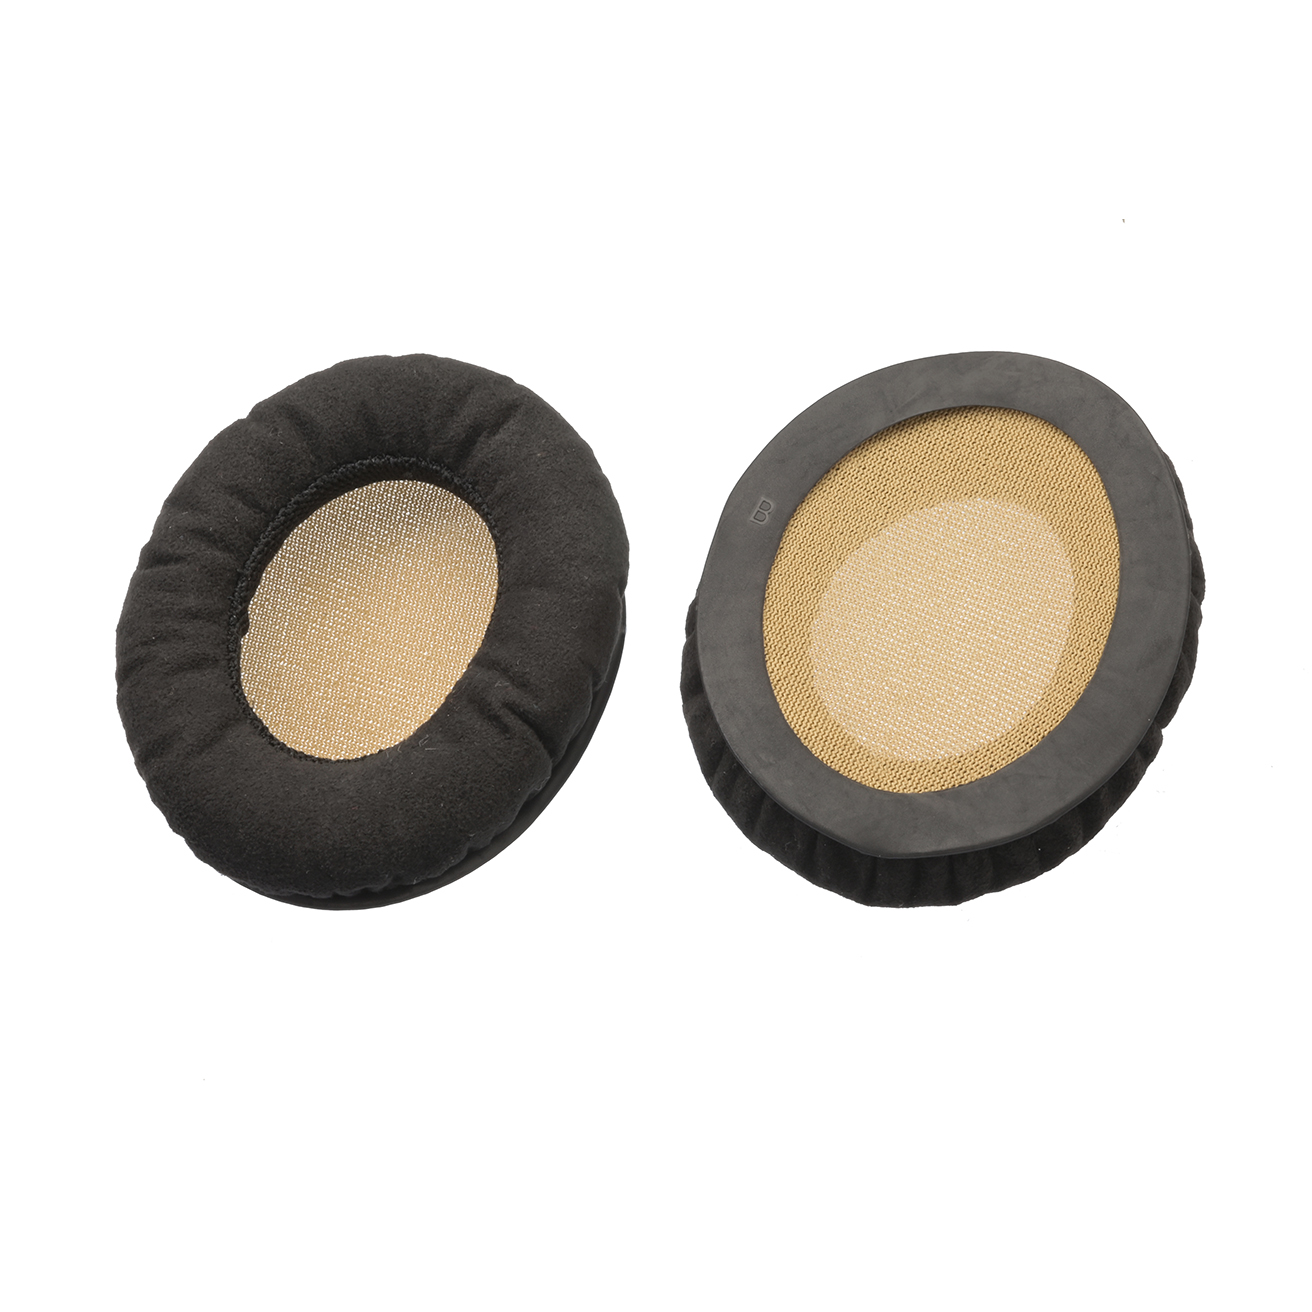 Ear pads (1 pair),